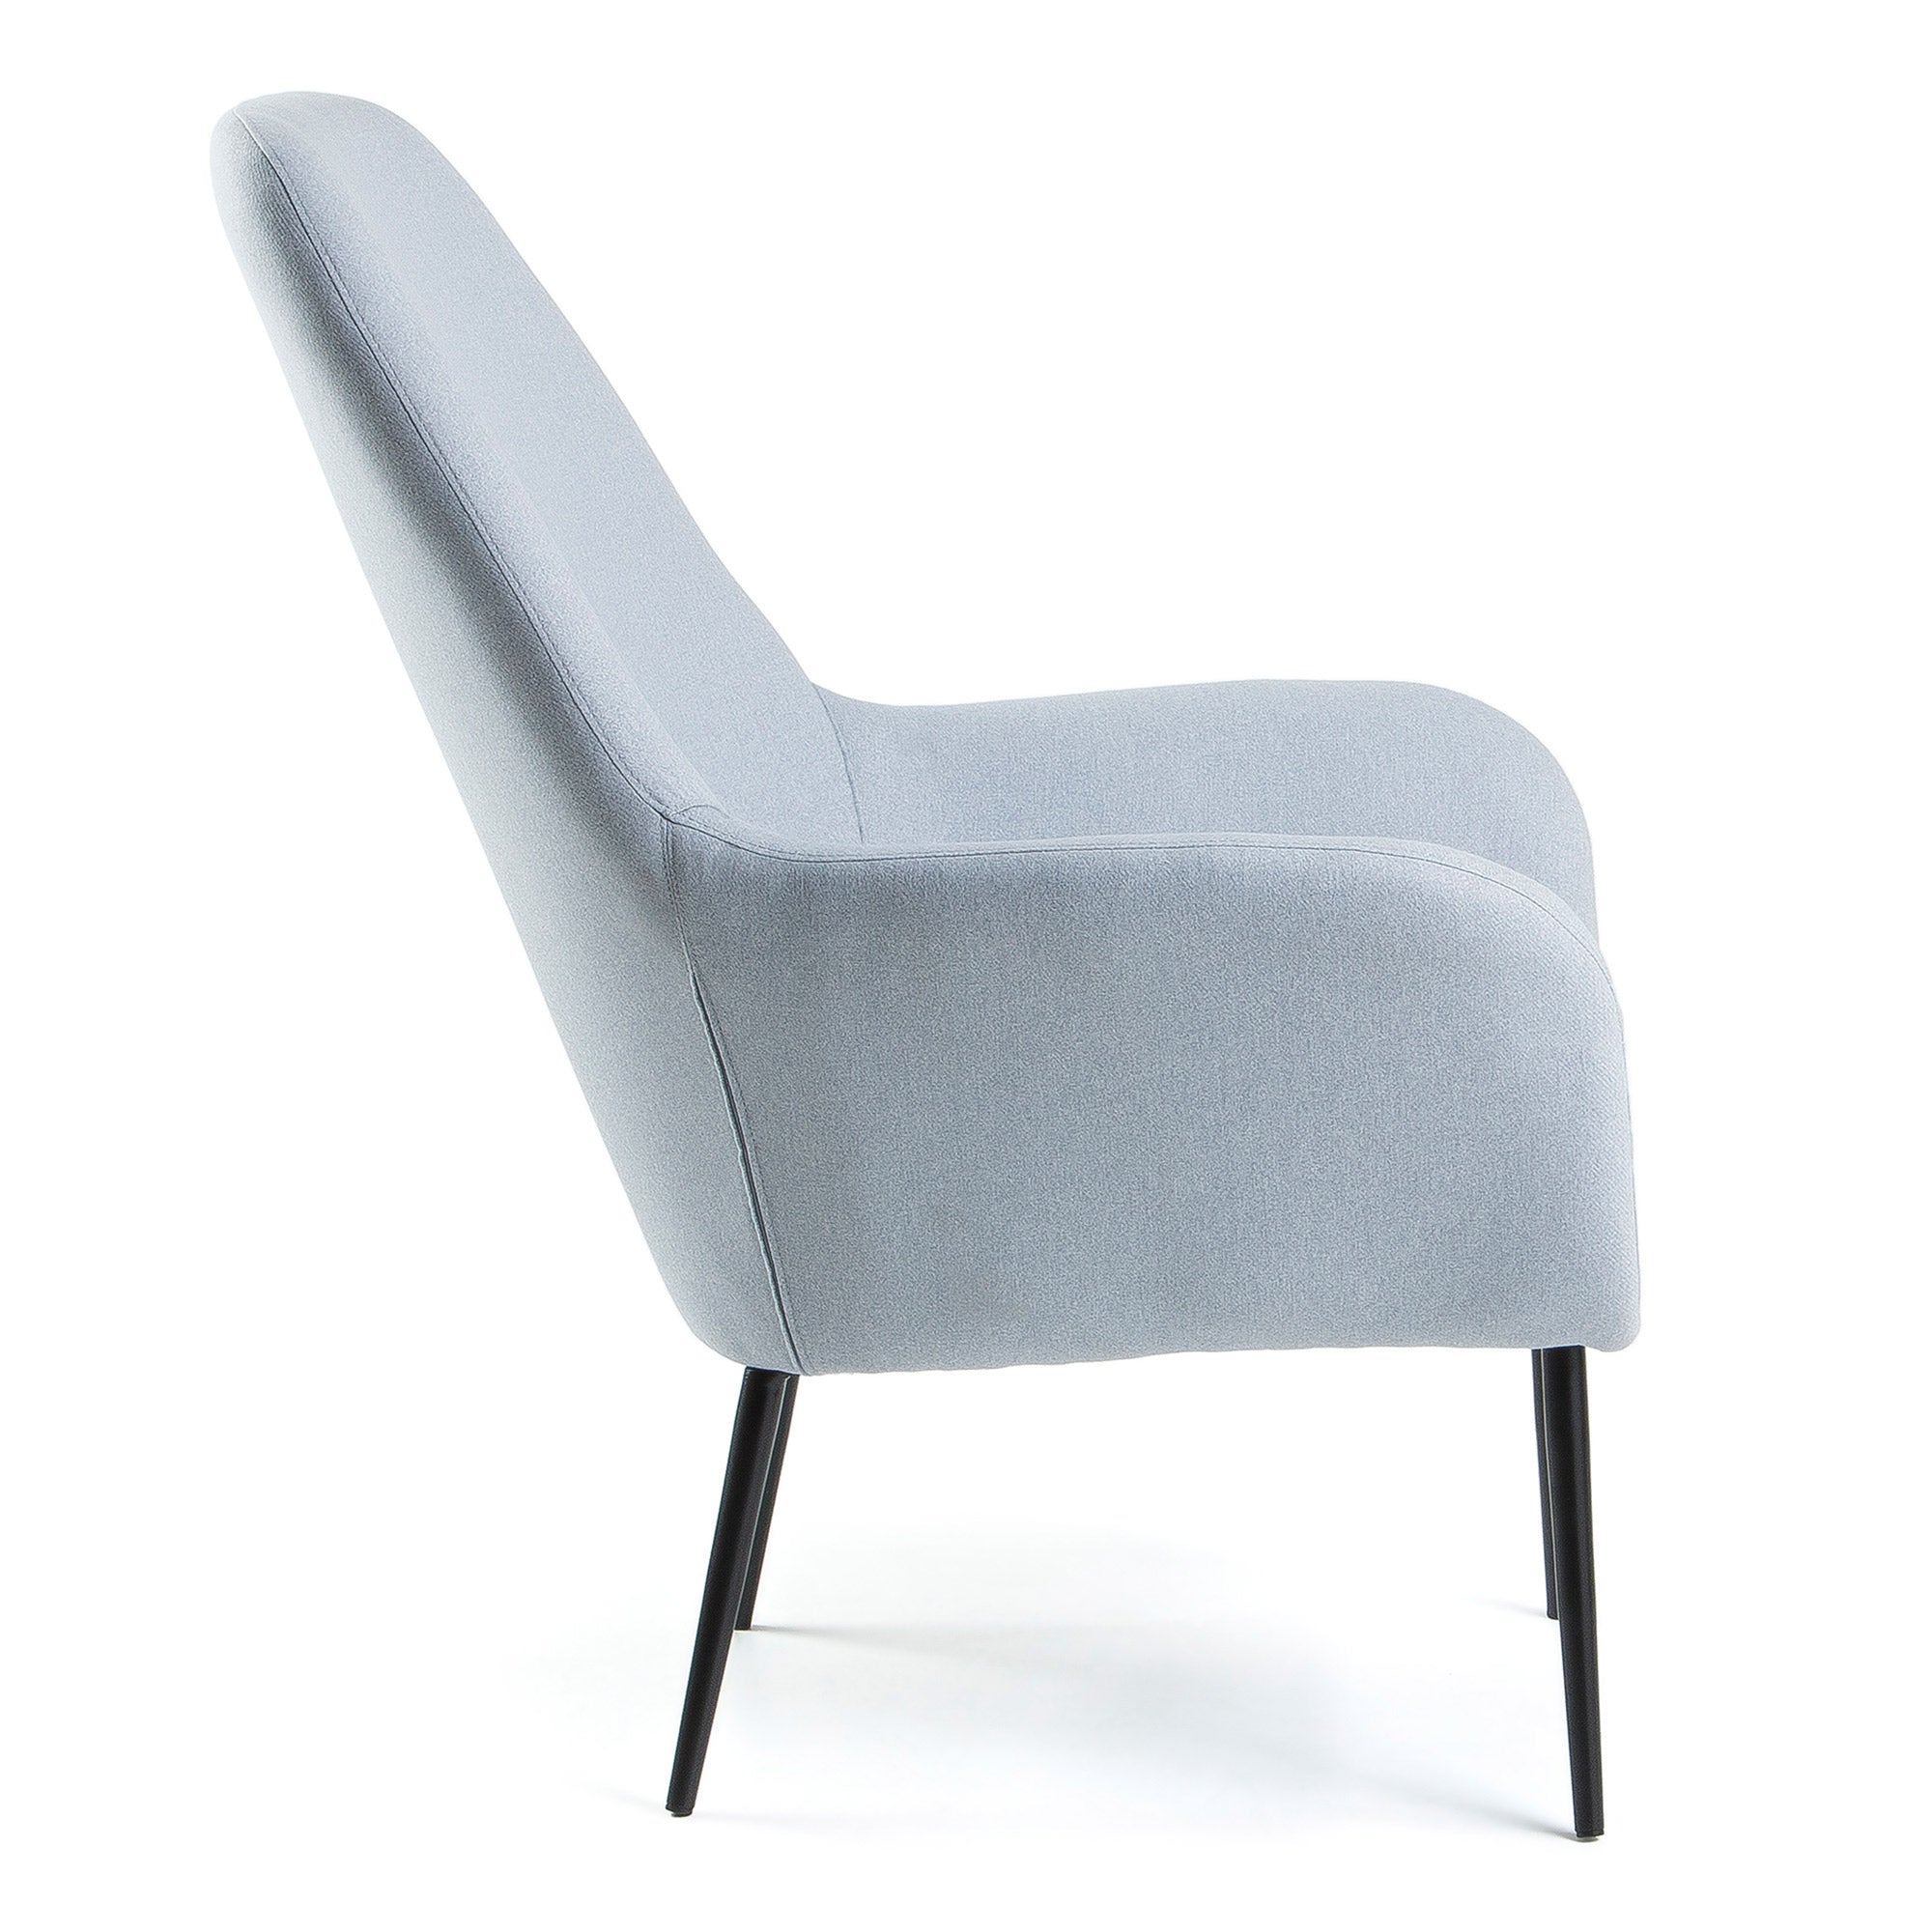 Lori Armchair - Light Blue Fabric, Armchair - Home-Buy Interiors